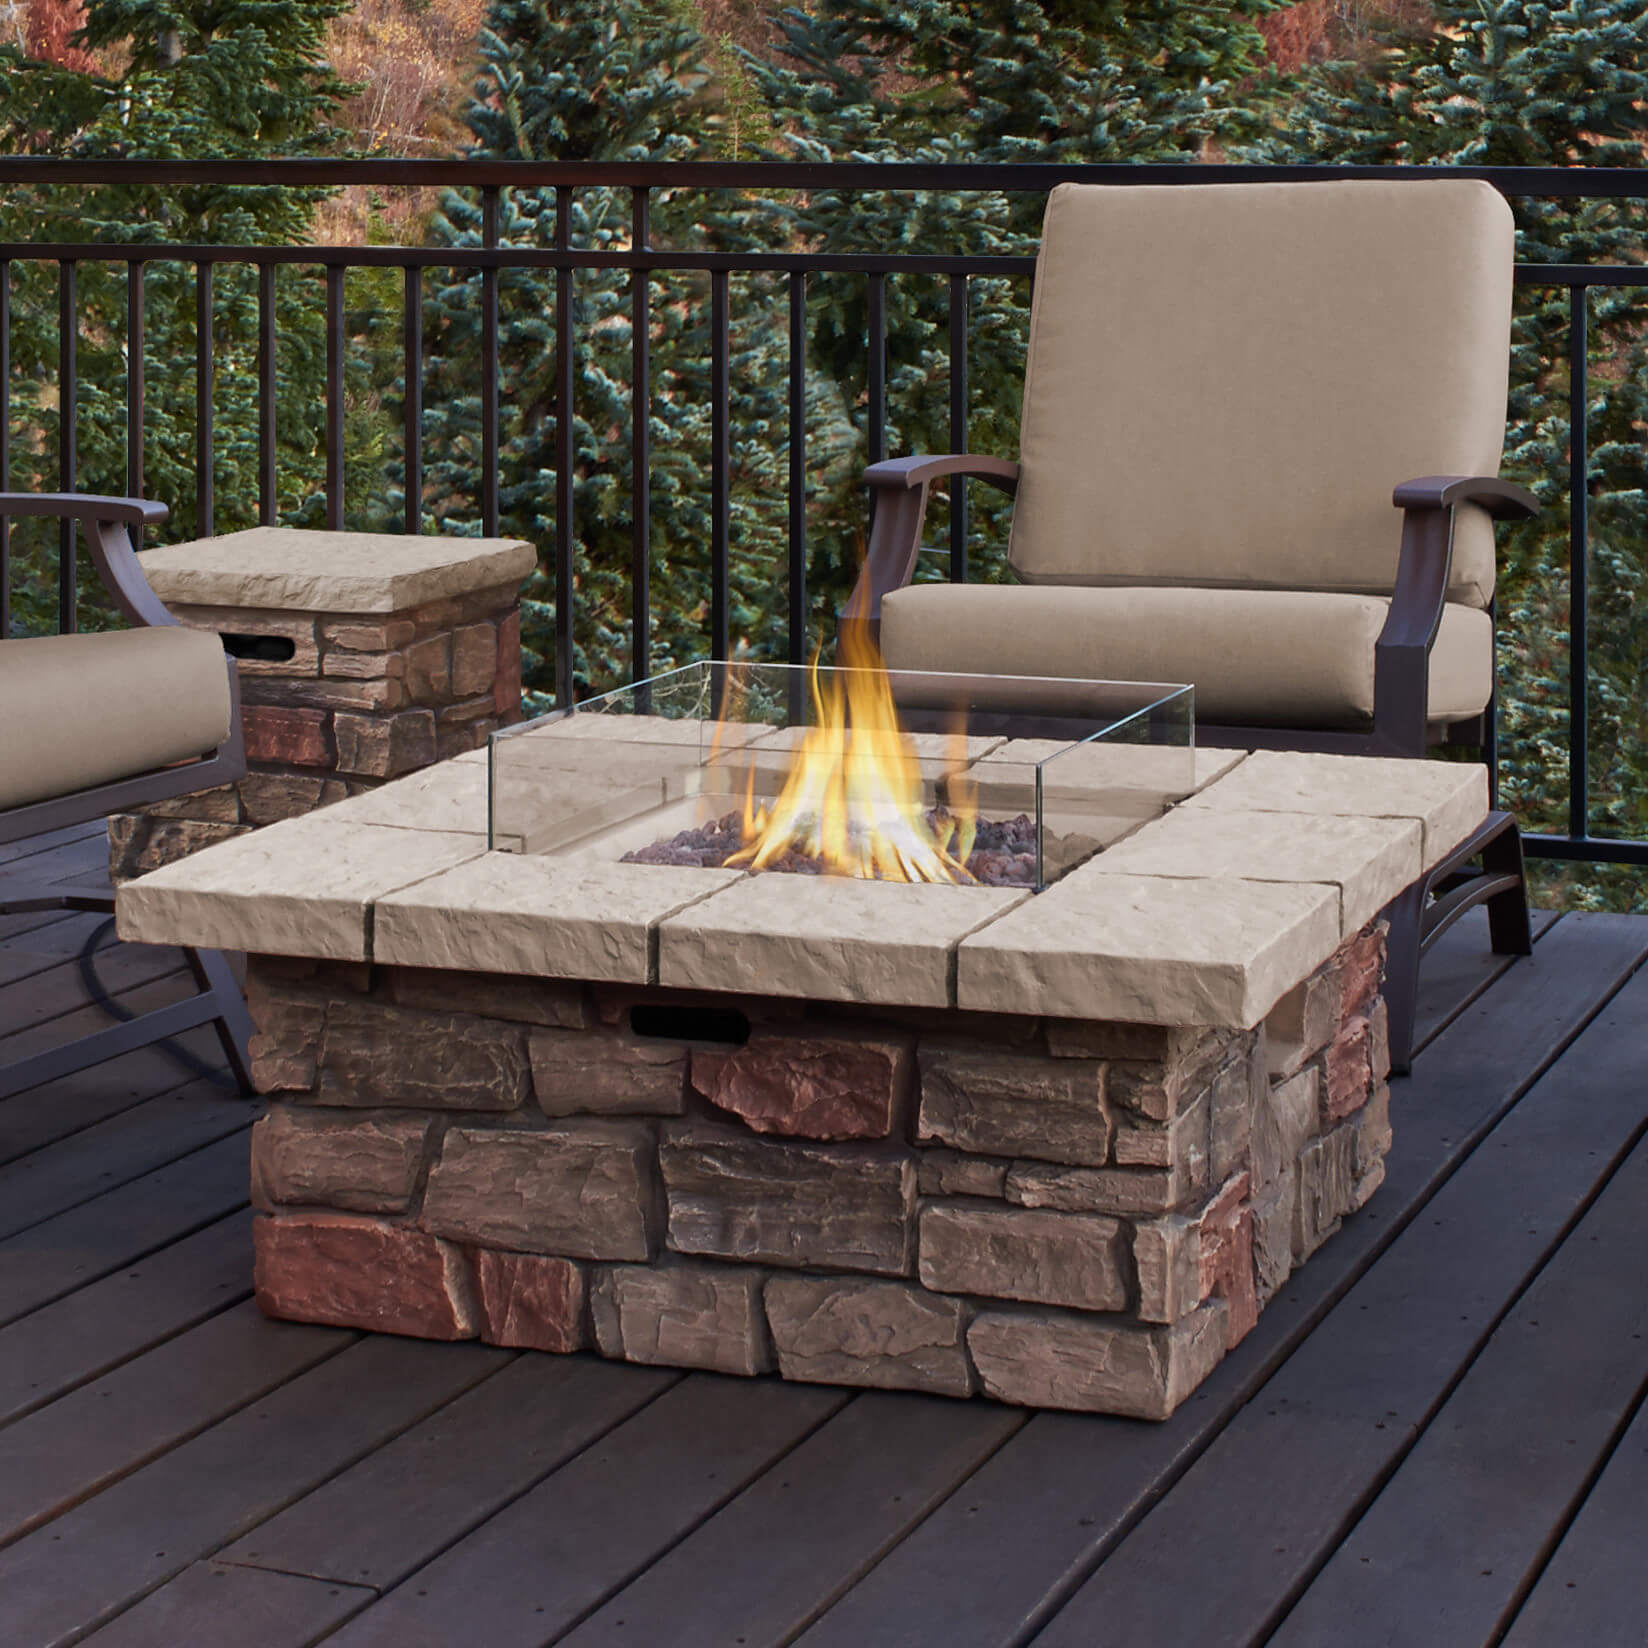 Give Your Home A Cool Fire Pit Table With This Brick Façade Propane Patio Fire  Pit Part 72